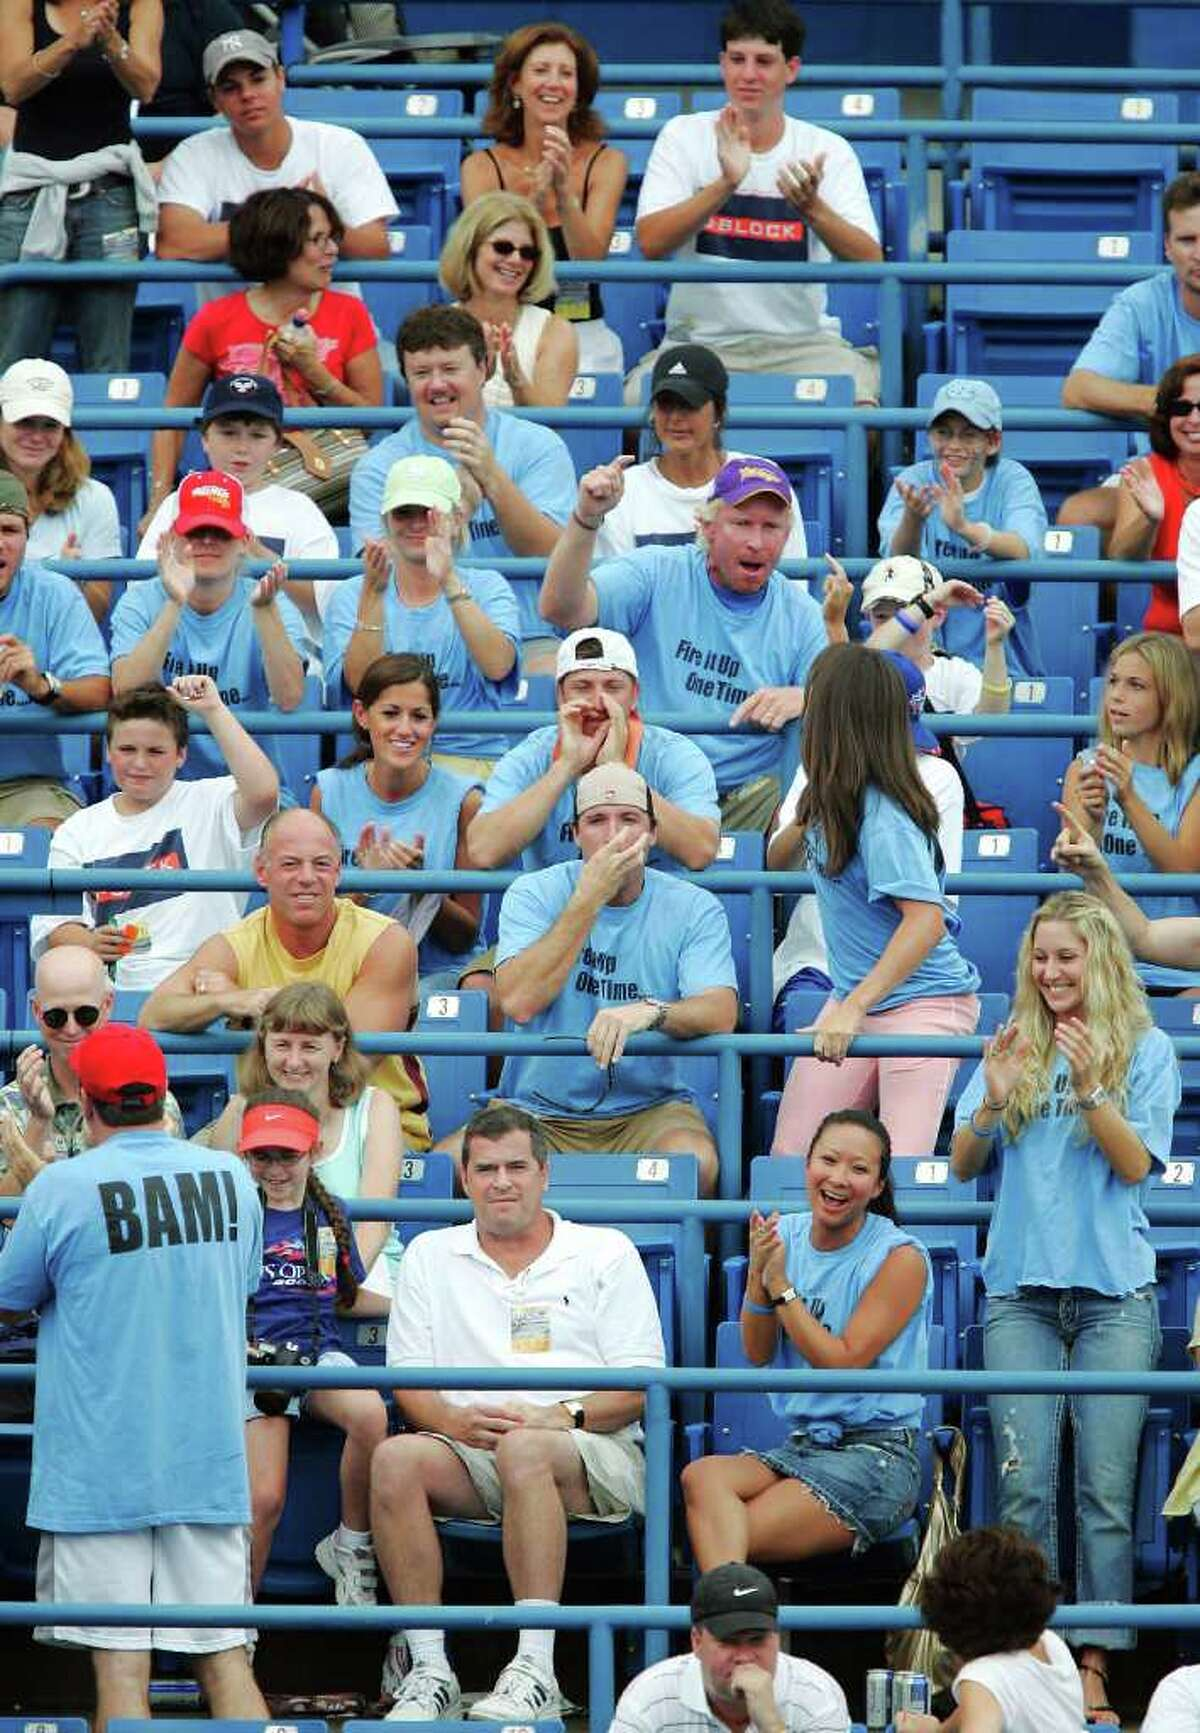 NEW HAVEN, CT - AUGUST 28: James Blake's fans cheer him on against Feliciano Lopez of Spain during the finals of the Pilot Pen Tennis tournament on August 28, 2005 at the Connecticut Tennis Center at Yale in New Haven, Connecticut. (Photo by Brian Bahr/Getty Images)